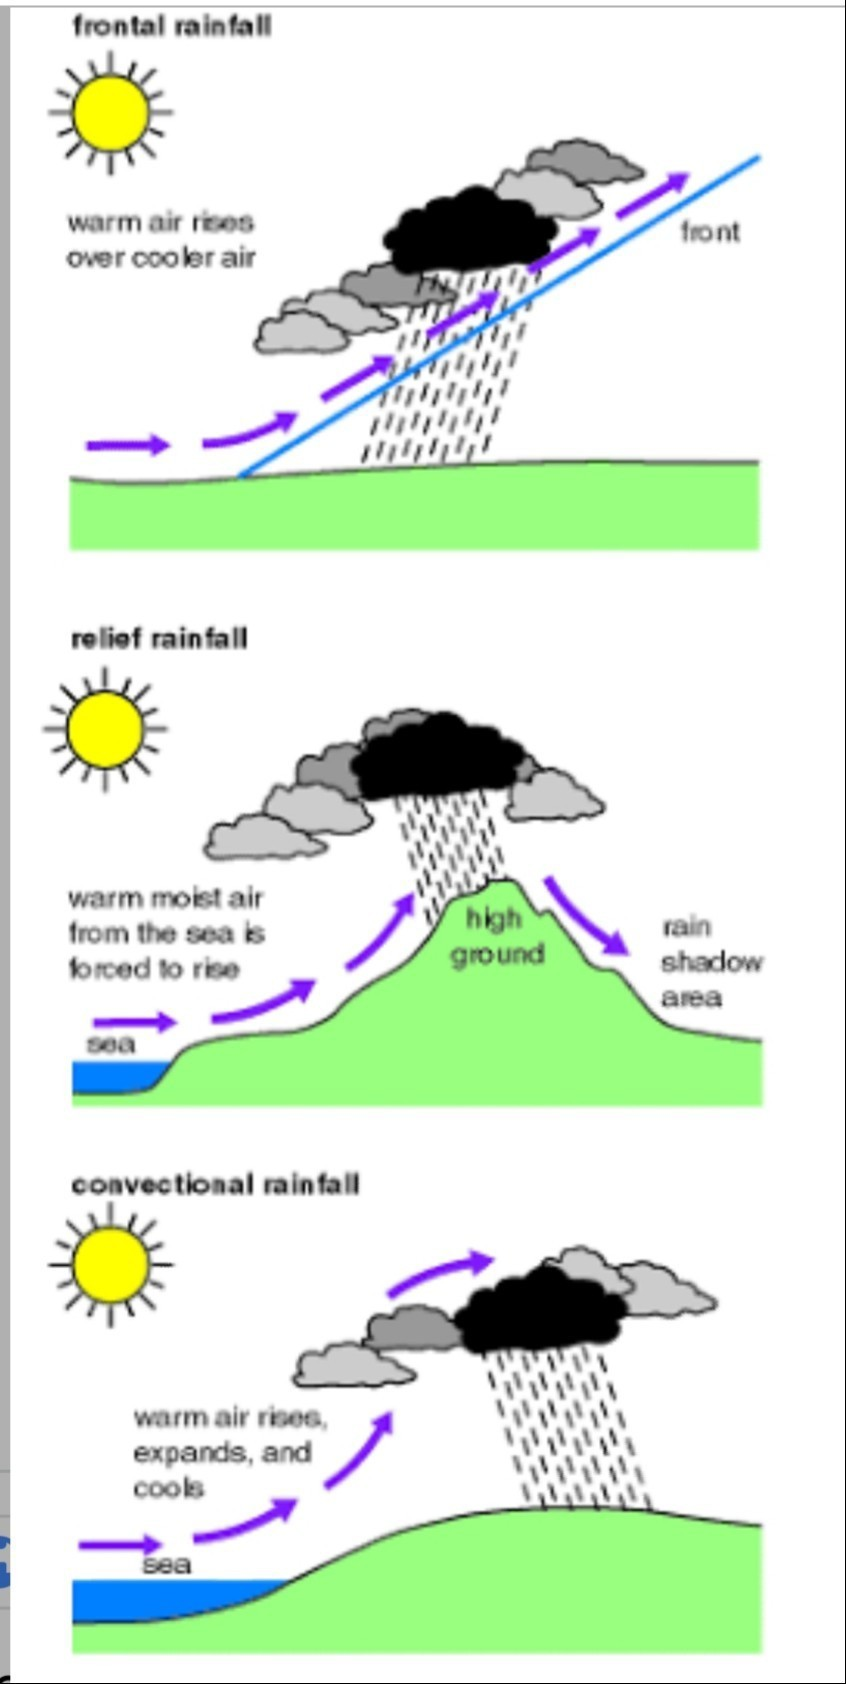 Name The Three Types  U00bbof Rainfall  With The Help Of A Diagram Describe Each Type Of Rainfall